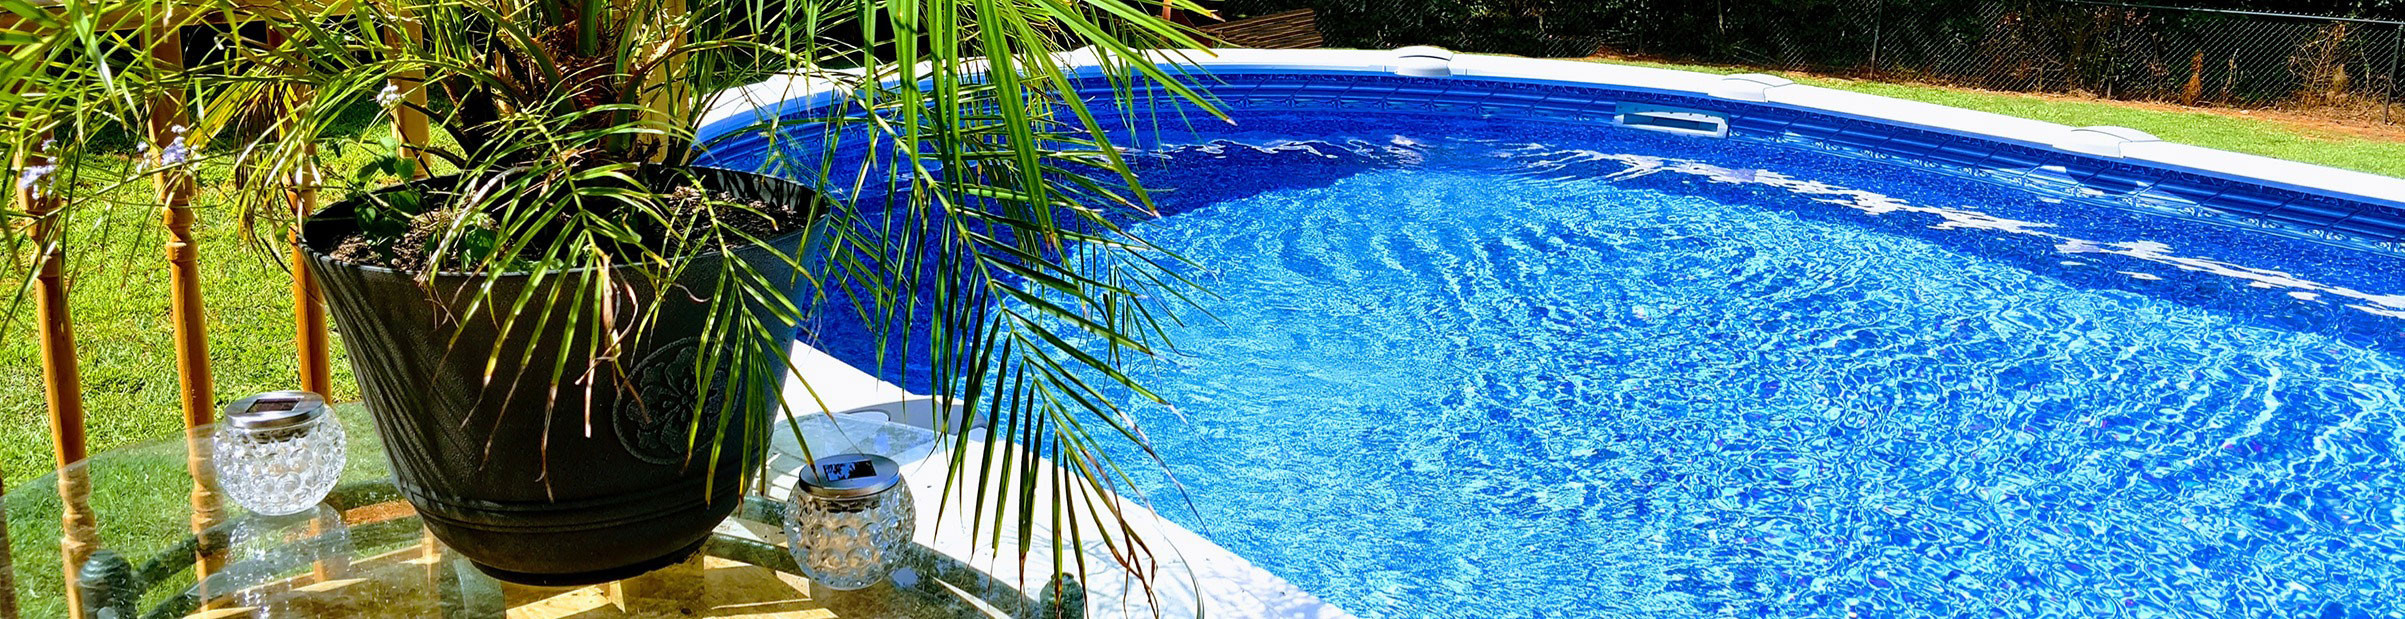 Contact Us Clearwater Pools Spas Amp Supplies United States